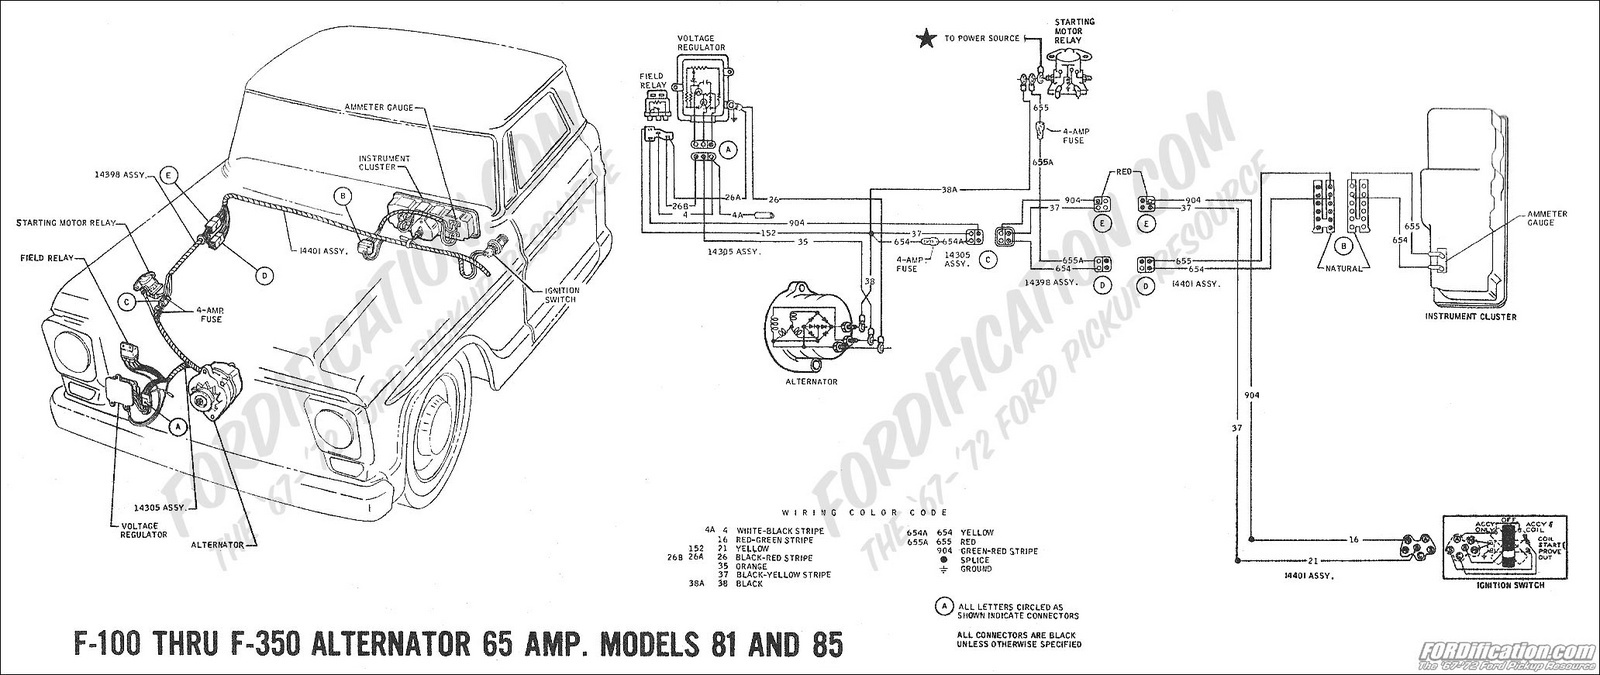 ford f 100 questions i have a 73 f 100 i have no power to the s 1974 Ford Alternator Wiring Diagram  1966 Ford Alternator Wiring Diagram 1975 Ford Alternator Wiring Diagram 1967 Mustang Alternator Wiring